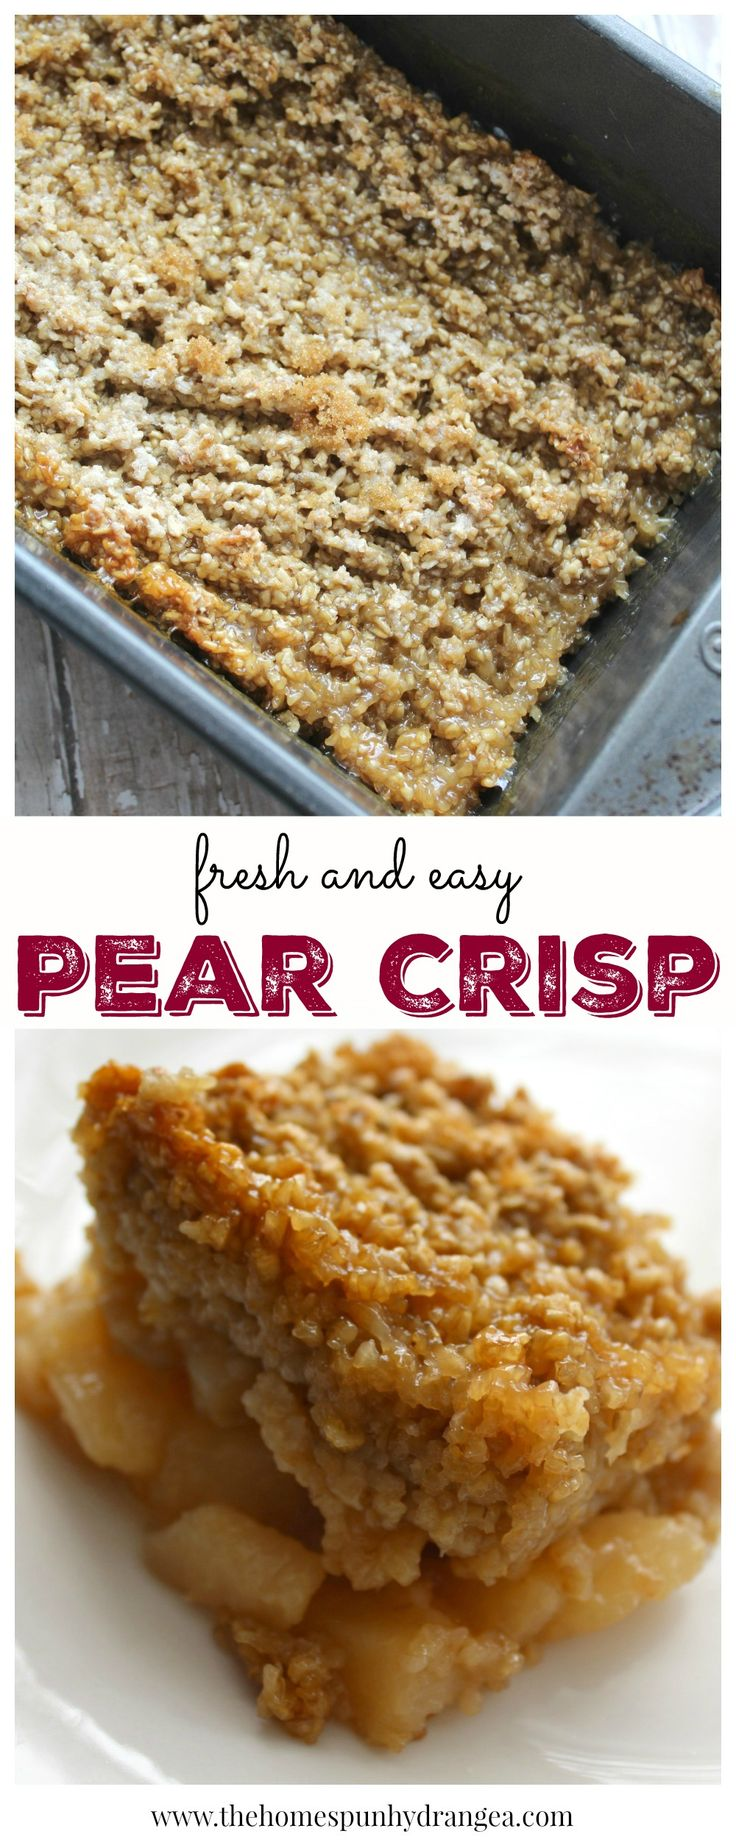 Find out how to use leftover pears to make your own pear crisp recipe like you see here!